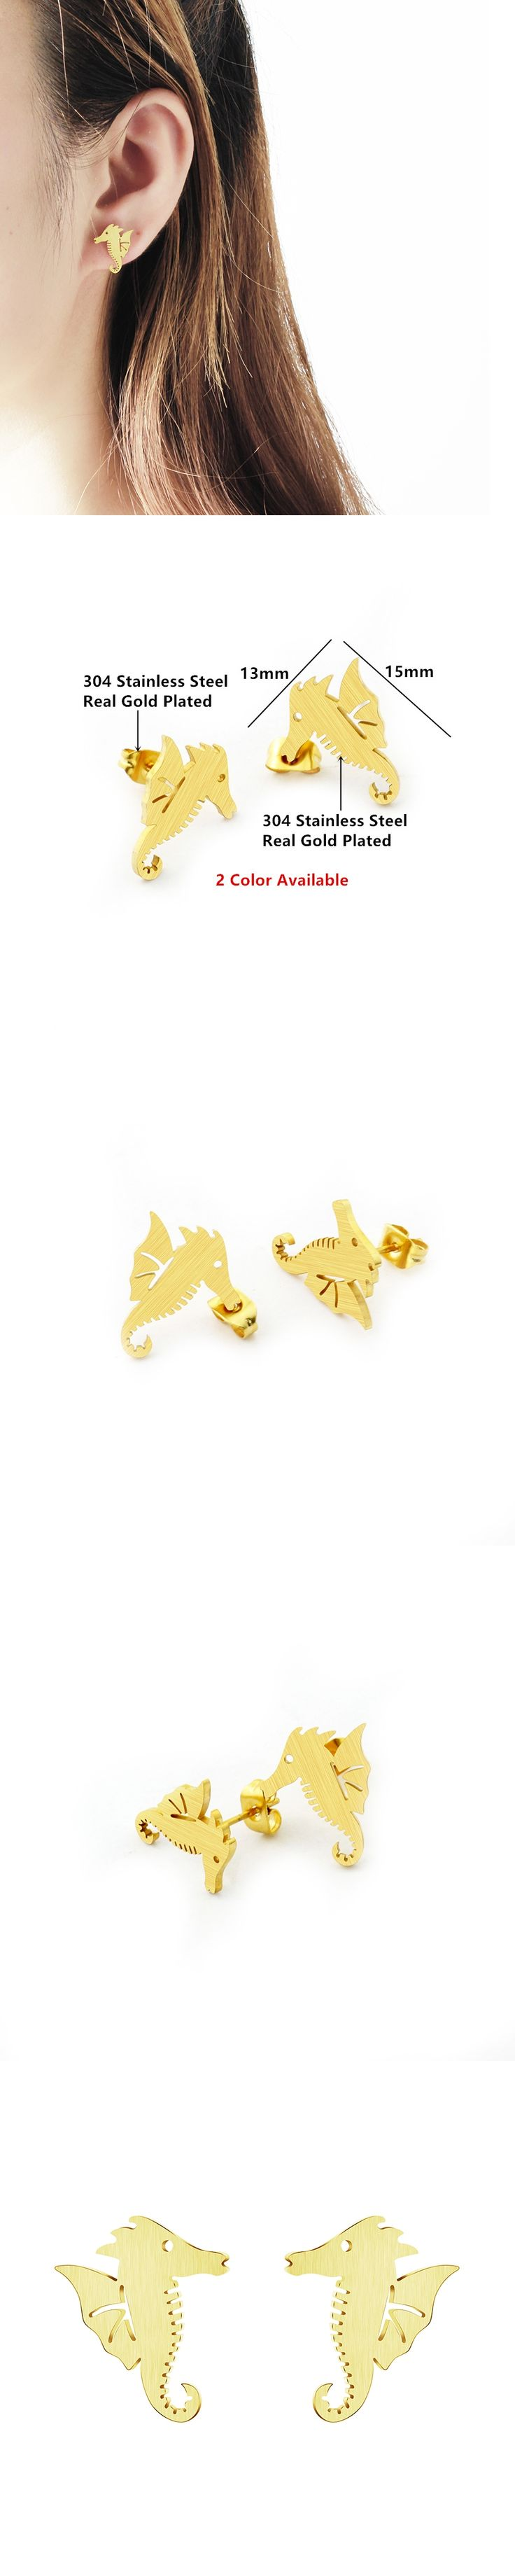 stud pin karat solid gold earrings real jewelry